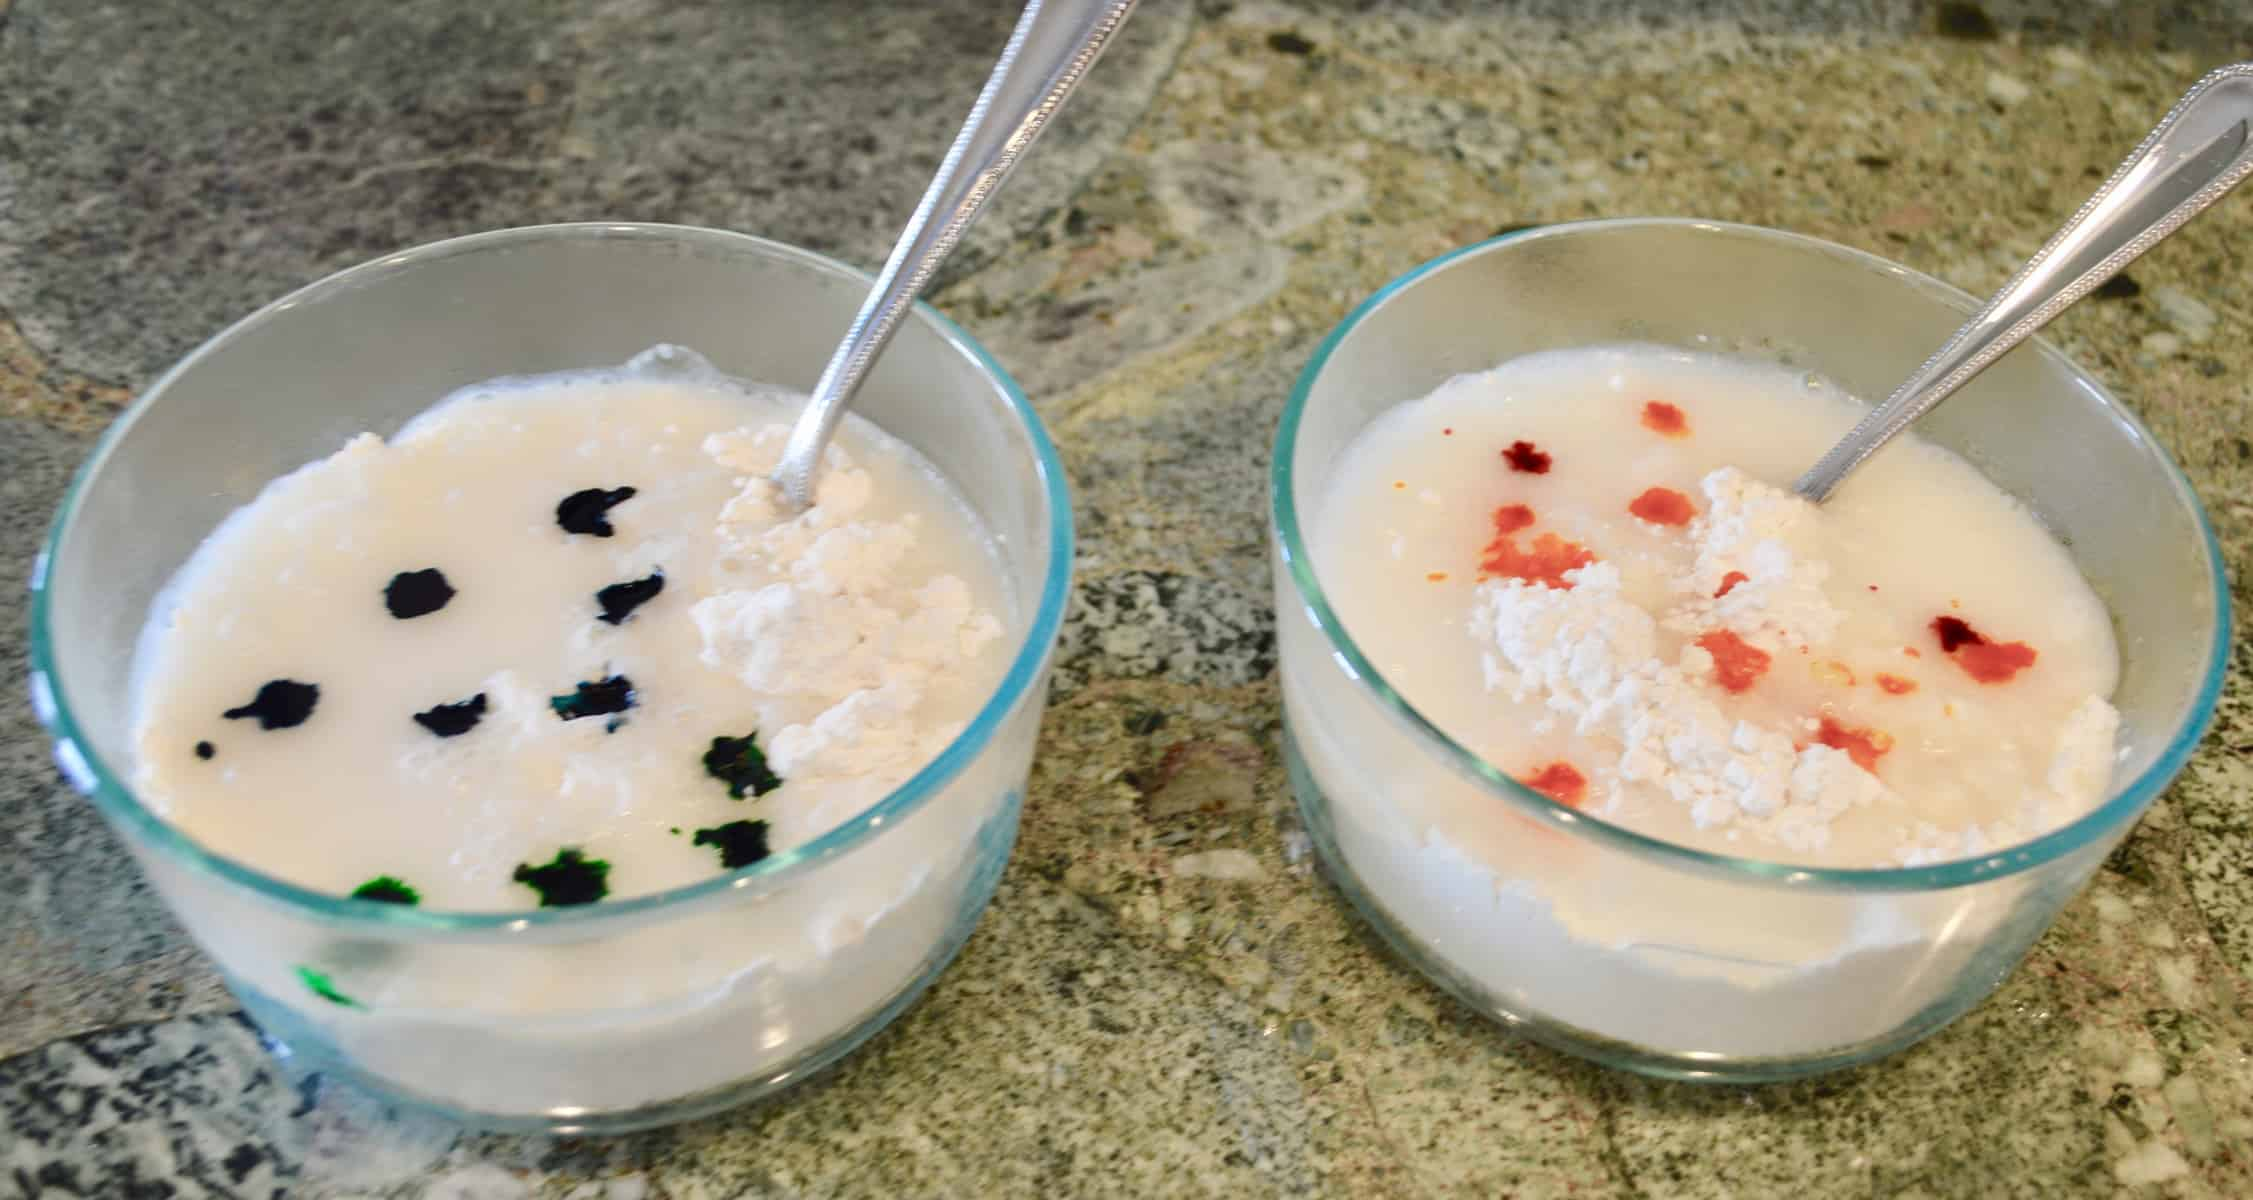 Two bowls of water and flour with food coloring drops on a countertop